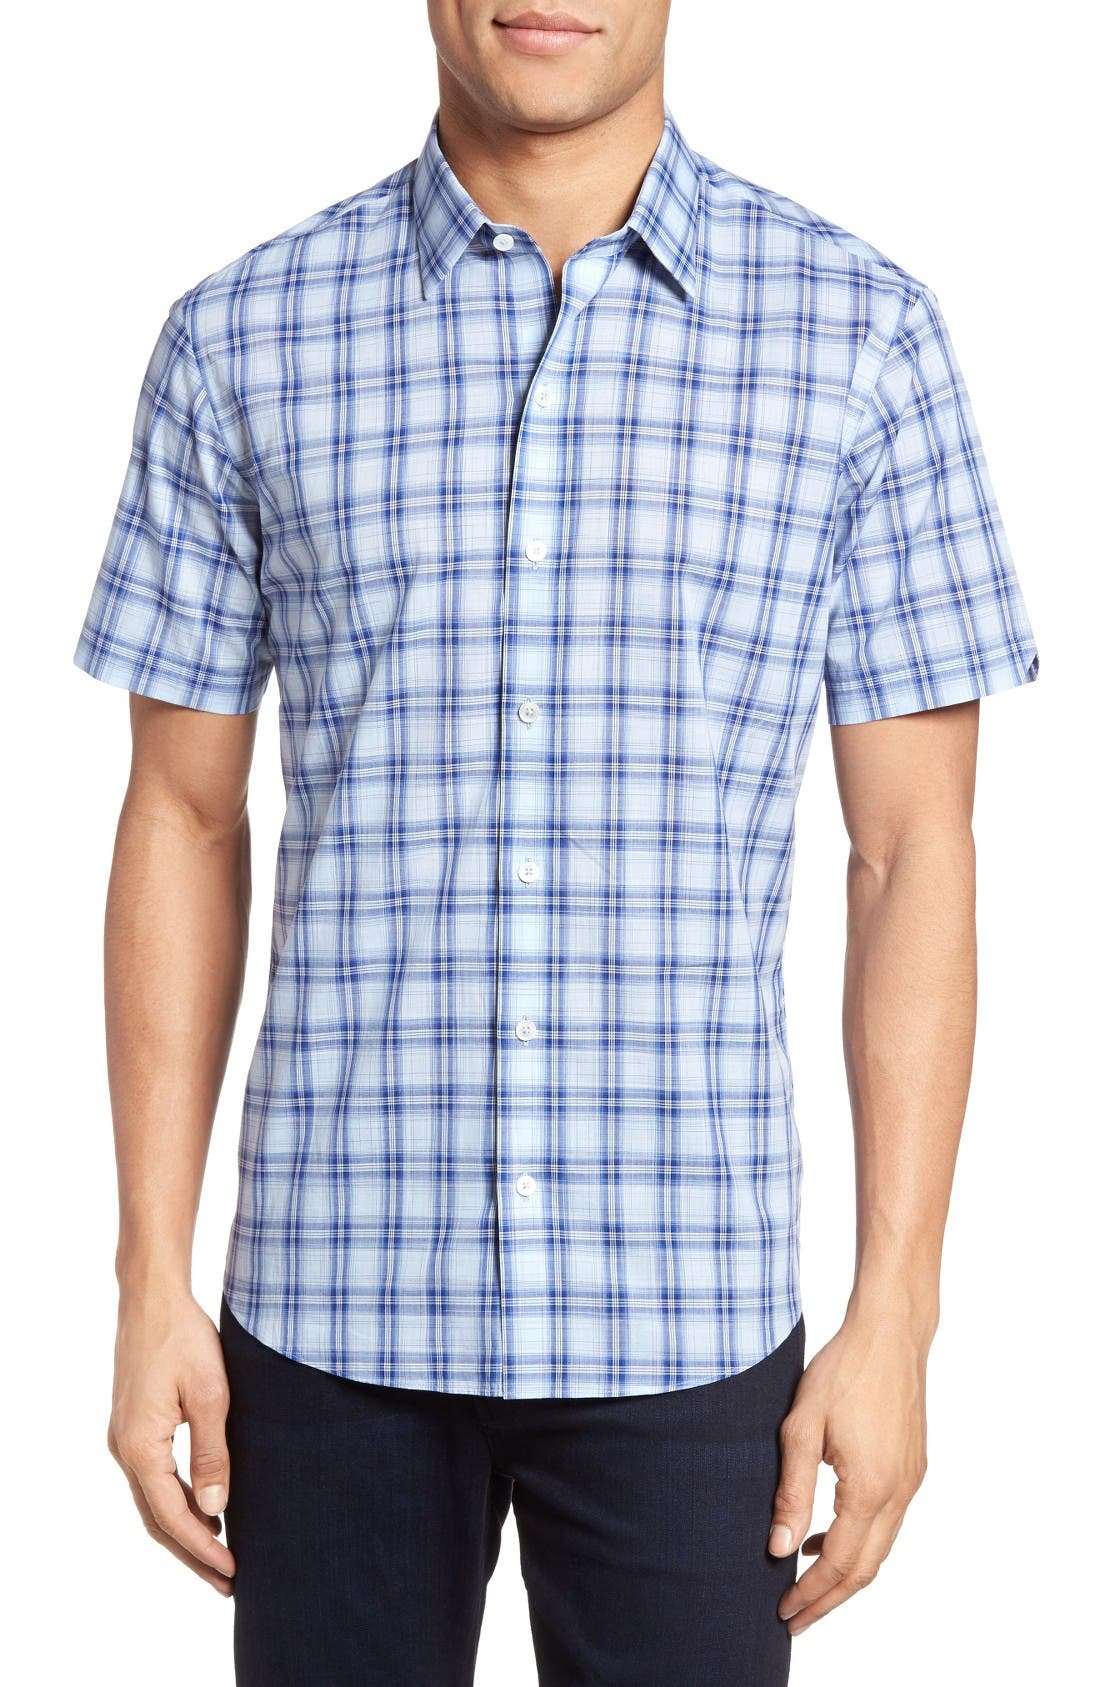 Alternate Image 1 Selected - Zachary Prell Hwang Trim Fit Plaid Sport Shirt